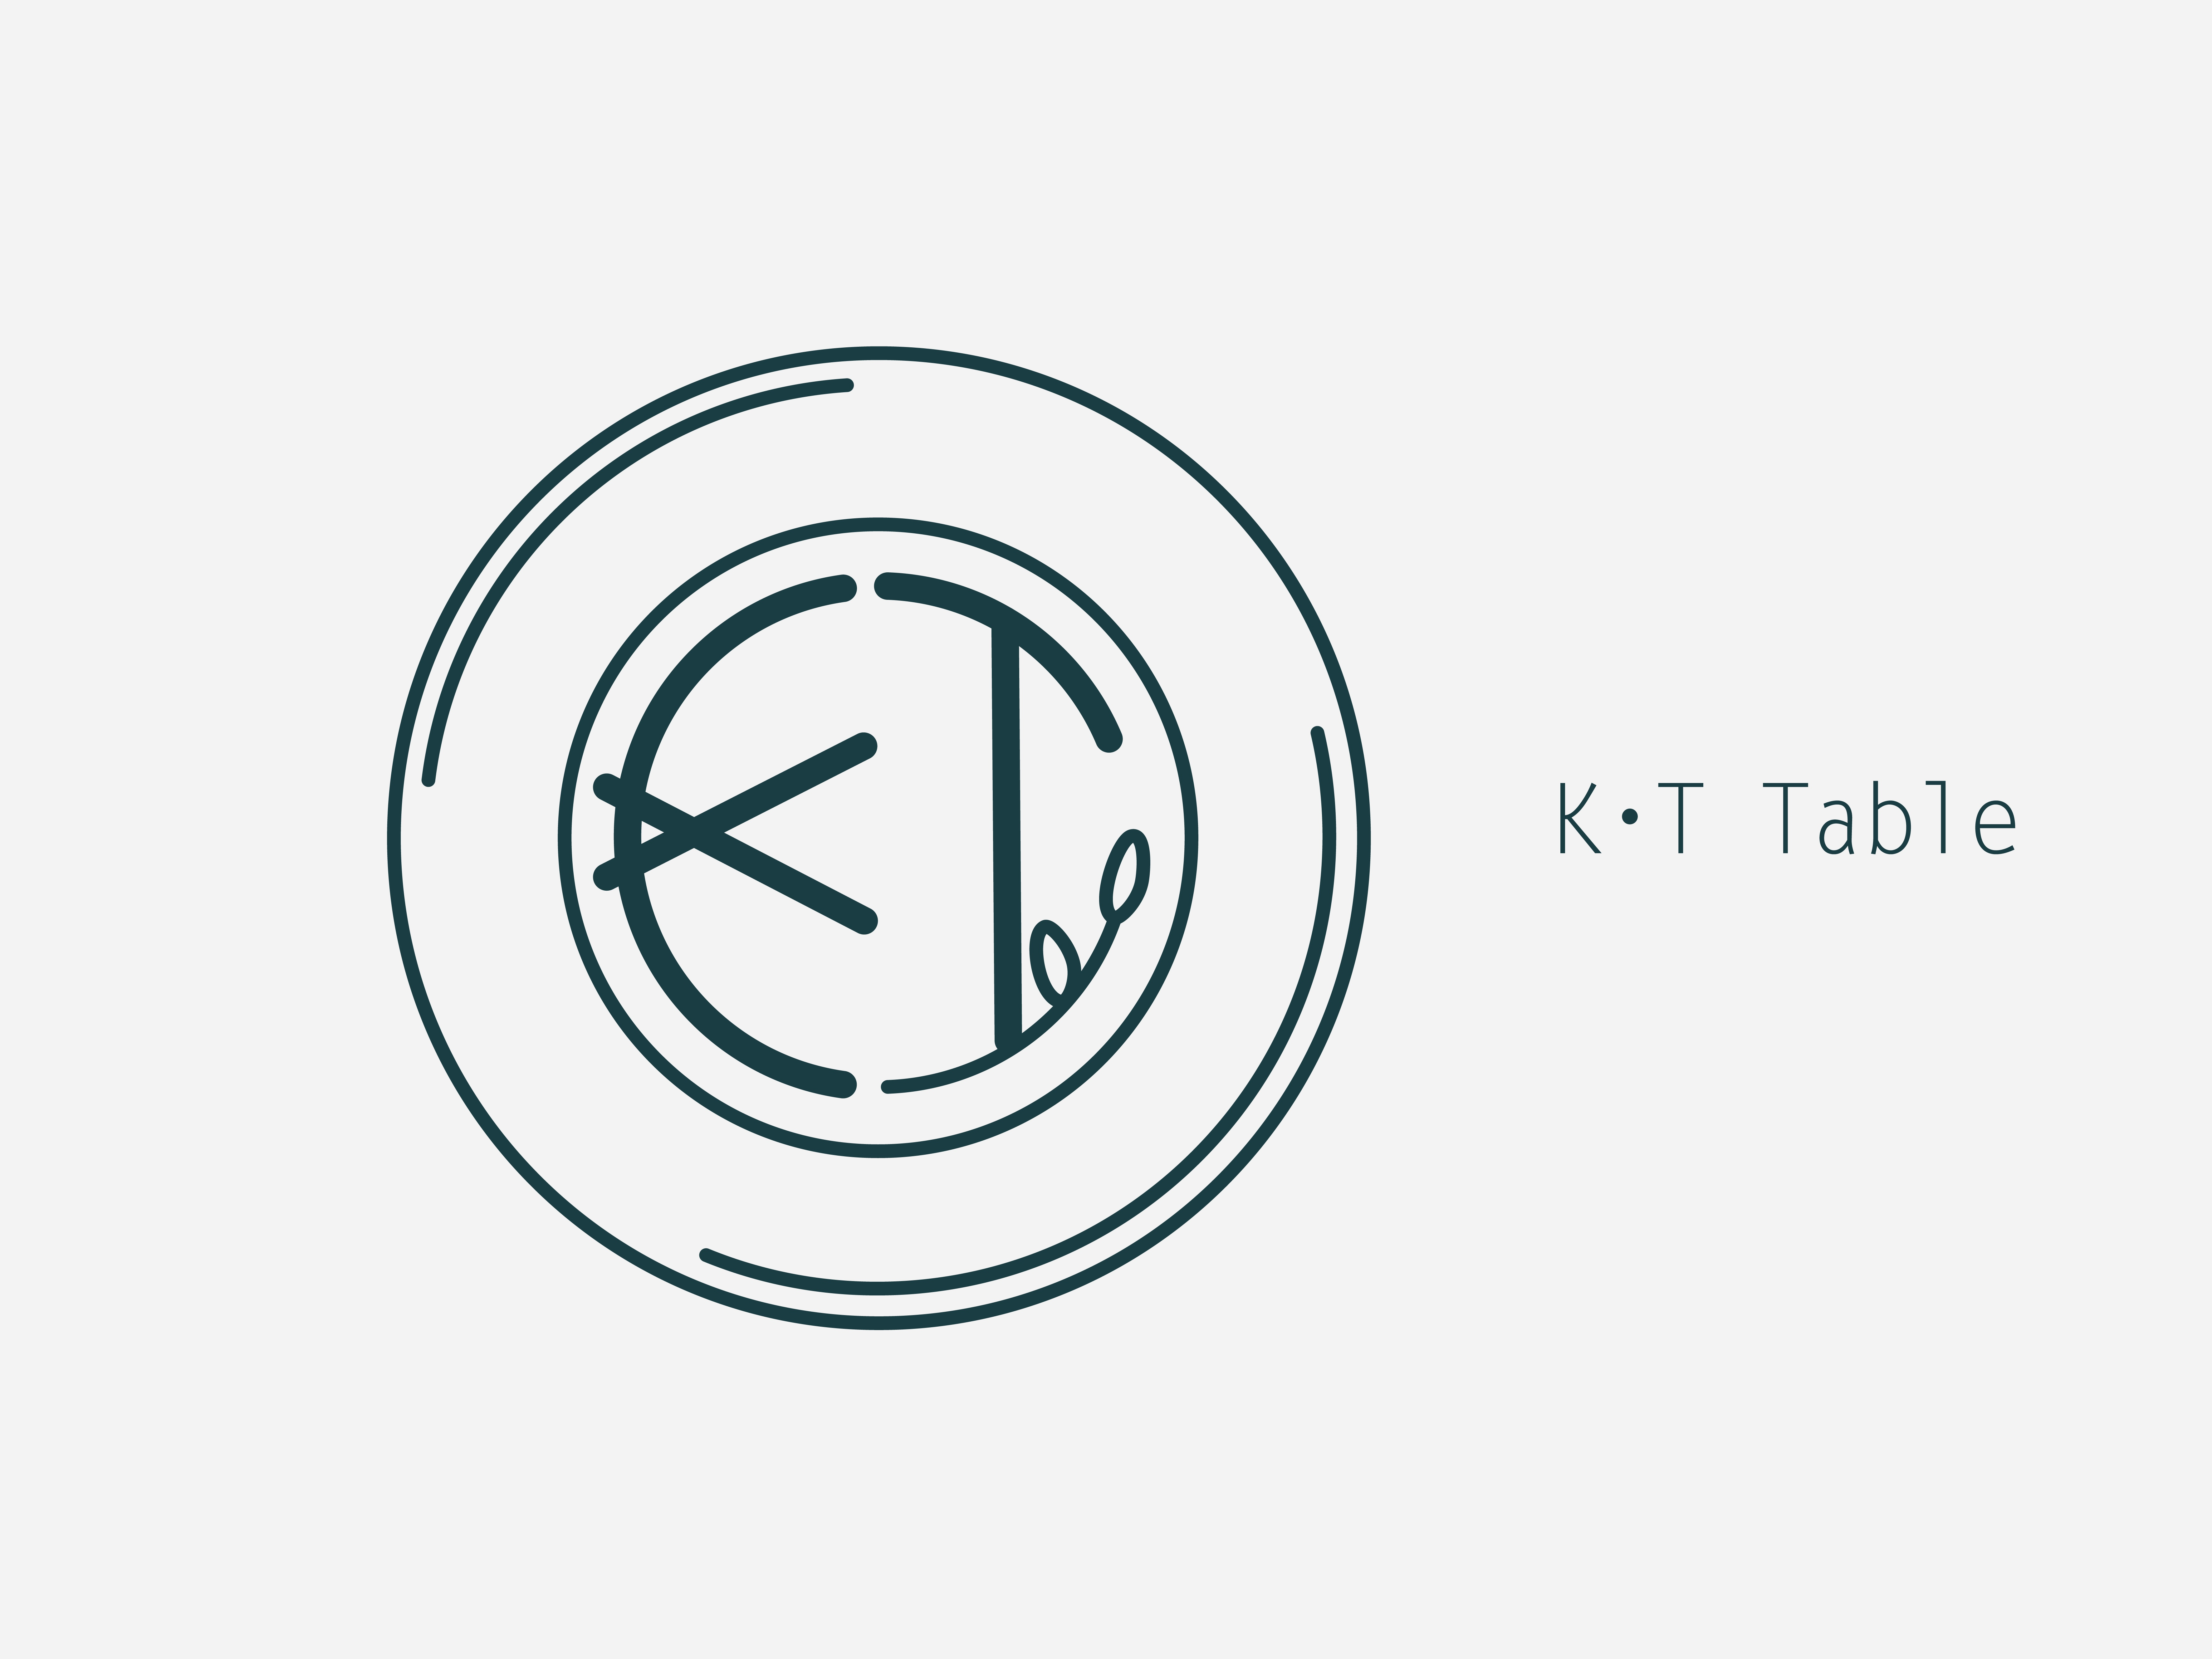 Kt table 4x 100